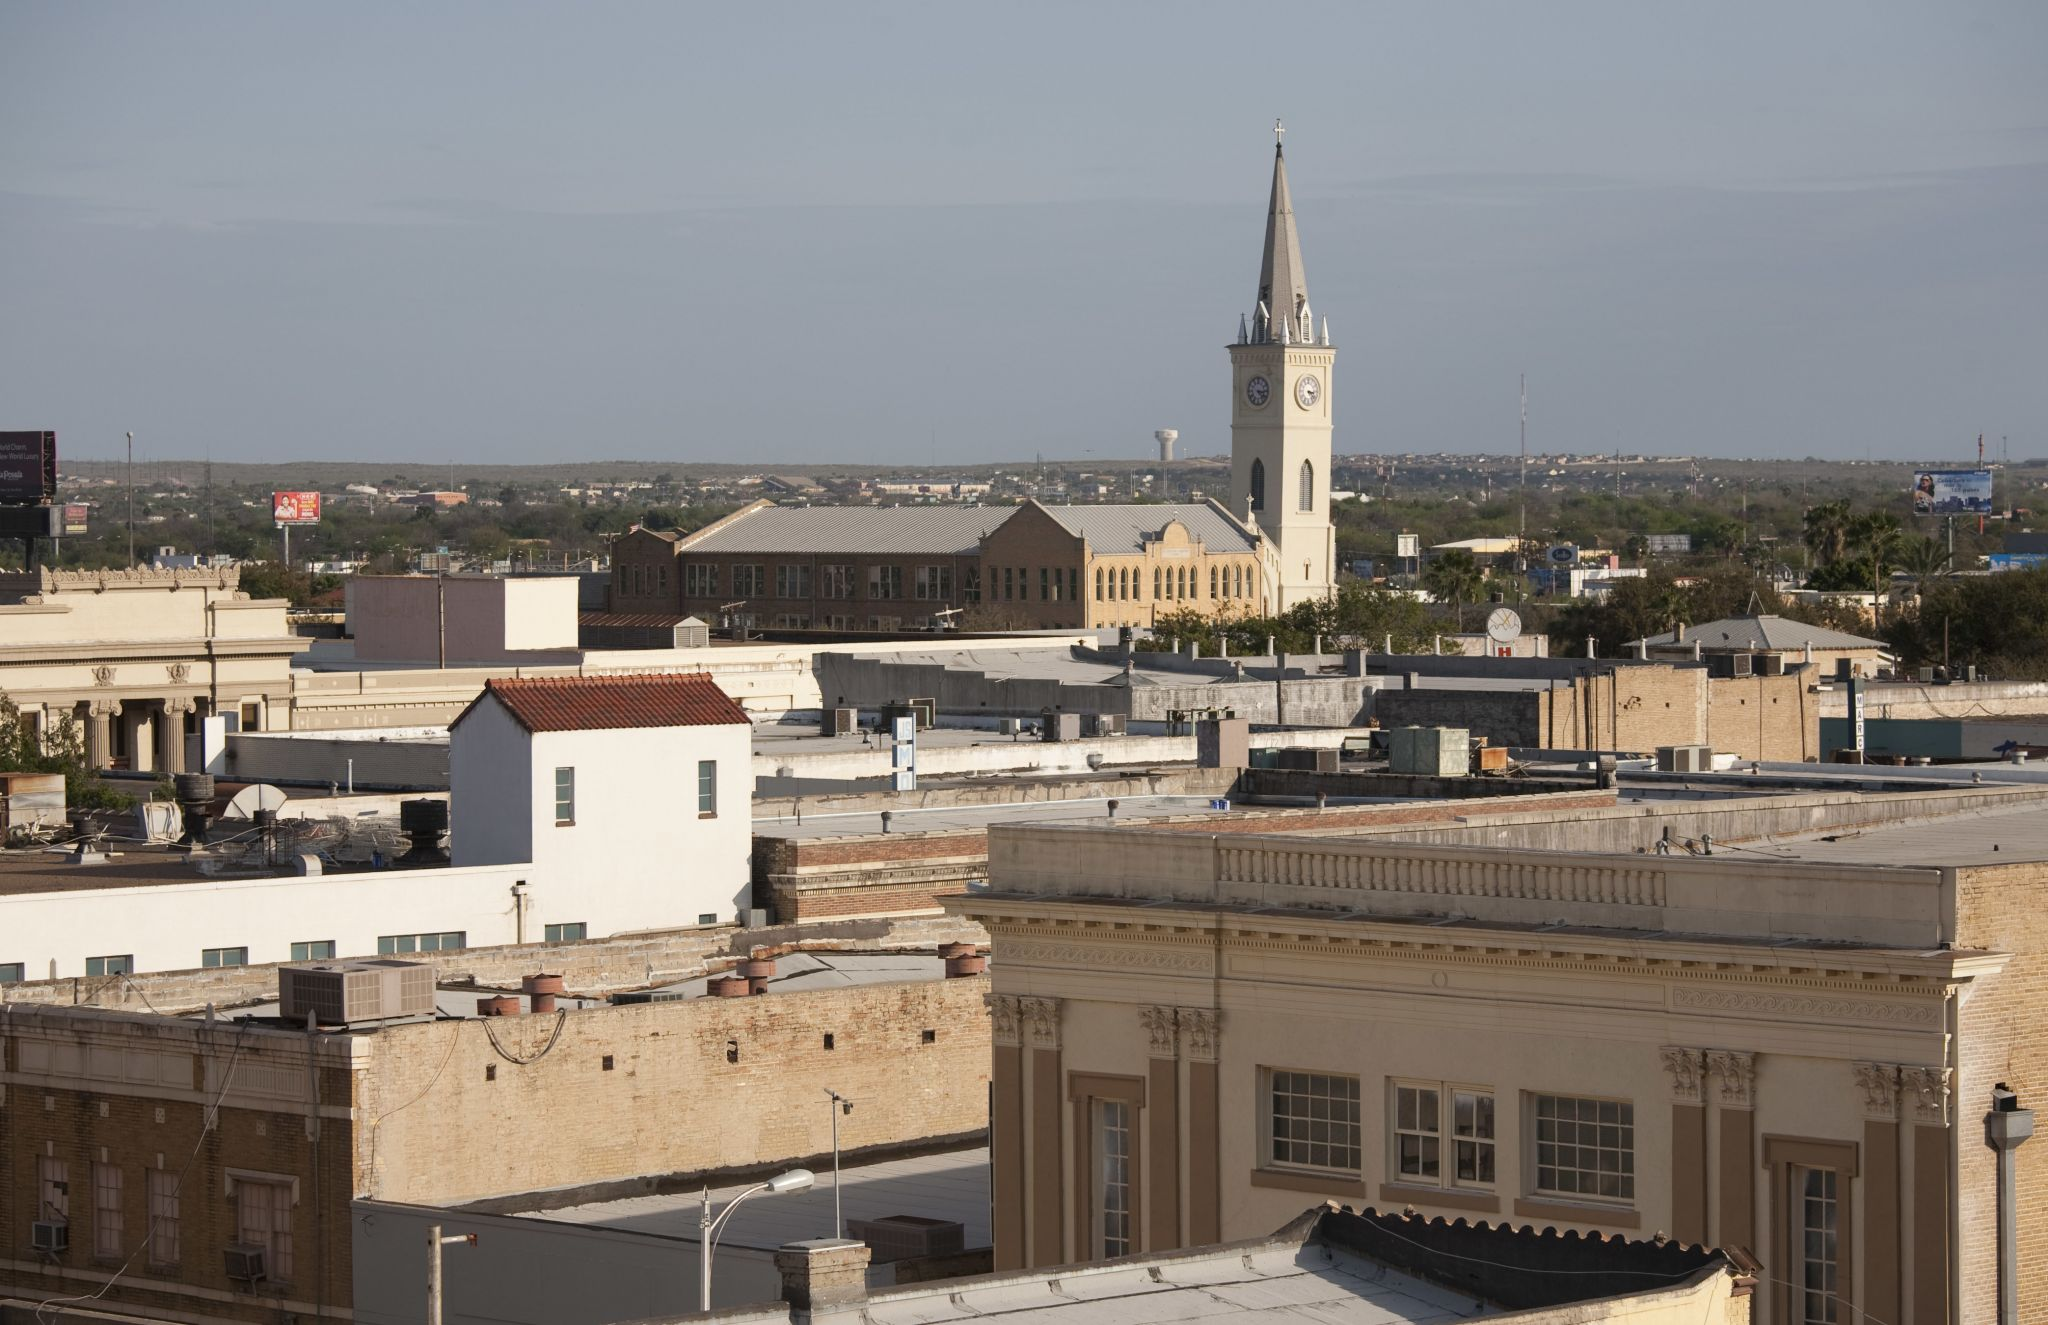 Laredo approves increase on parking rates, hours